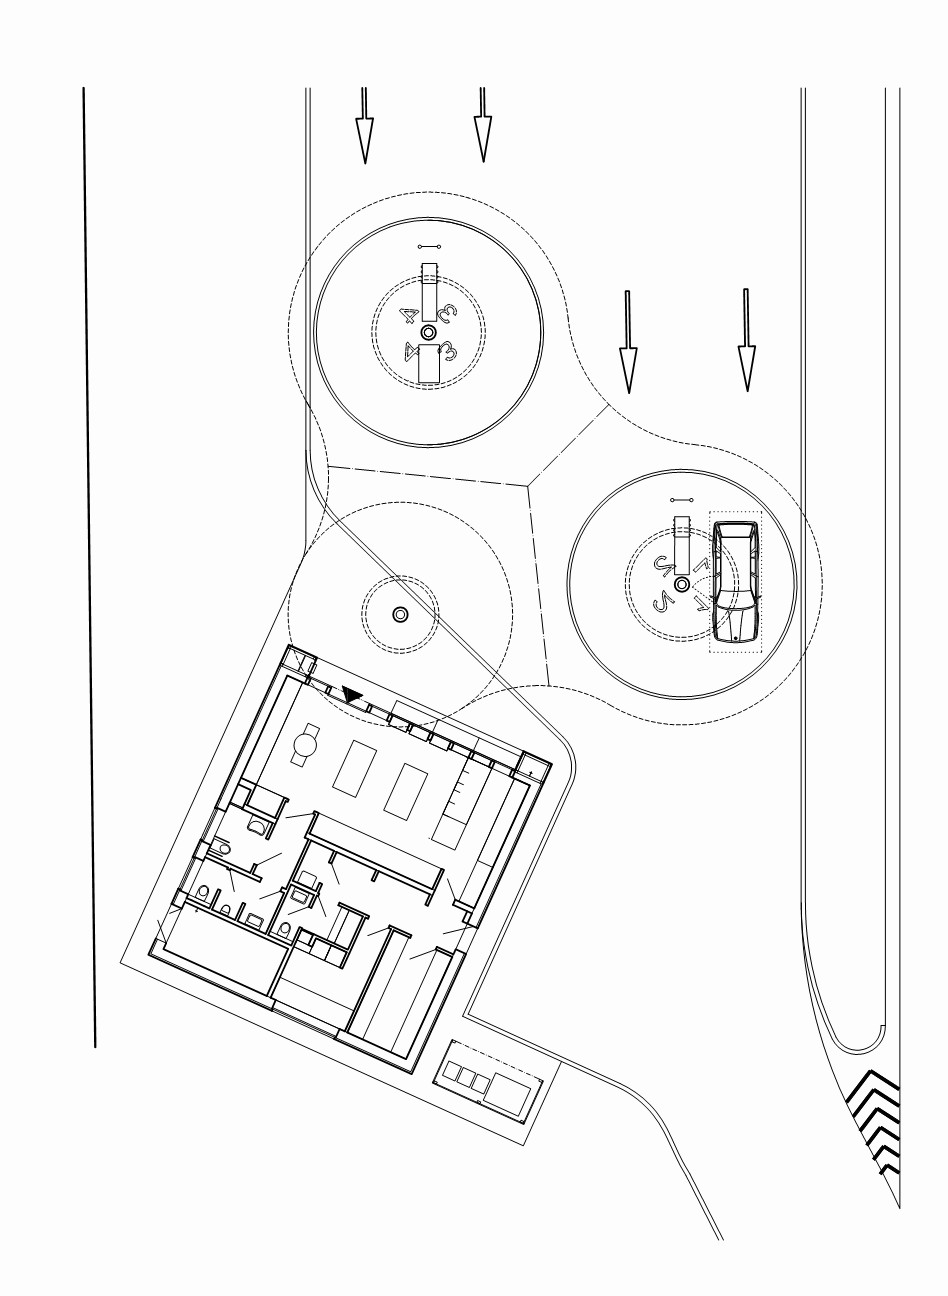 Ada  pliant Bathroom Floor Plan furthermore Interesting House Plan Handicap Bathroom Dimensions With Simple And Beautiful Design additionally Office Floor Plan as well Furniture Store Layout further Public Hygiene And Health. on restroom design